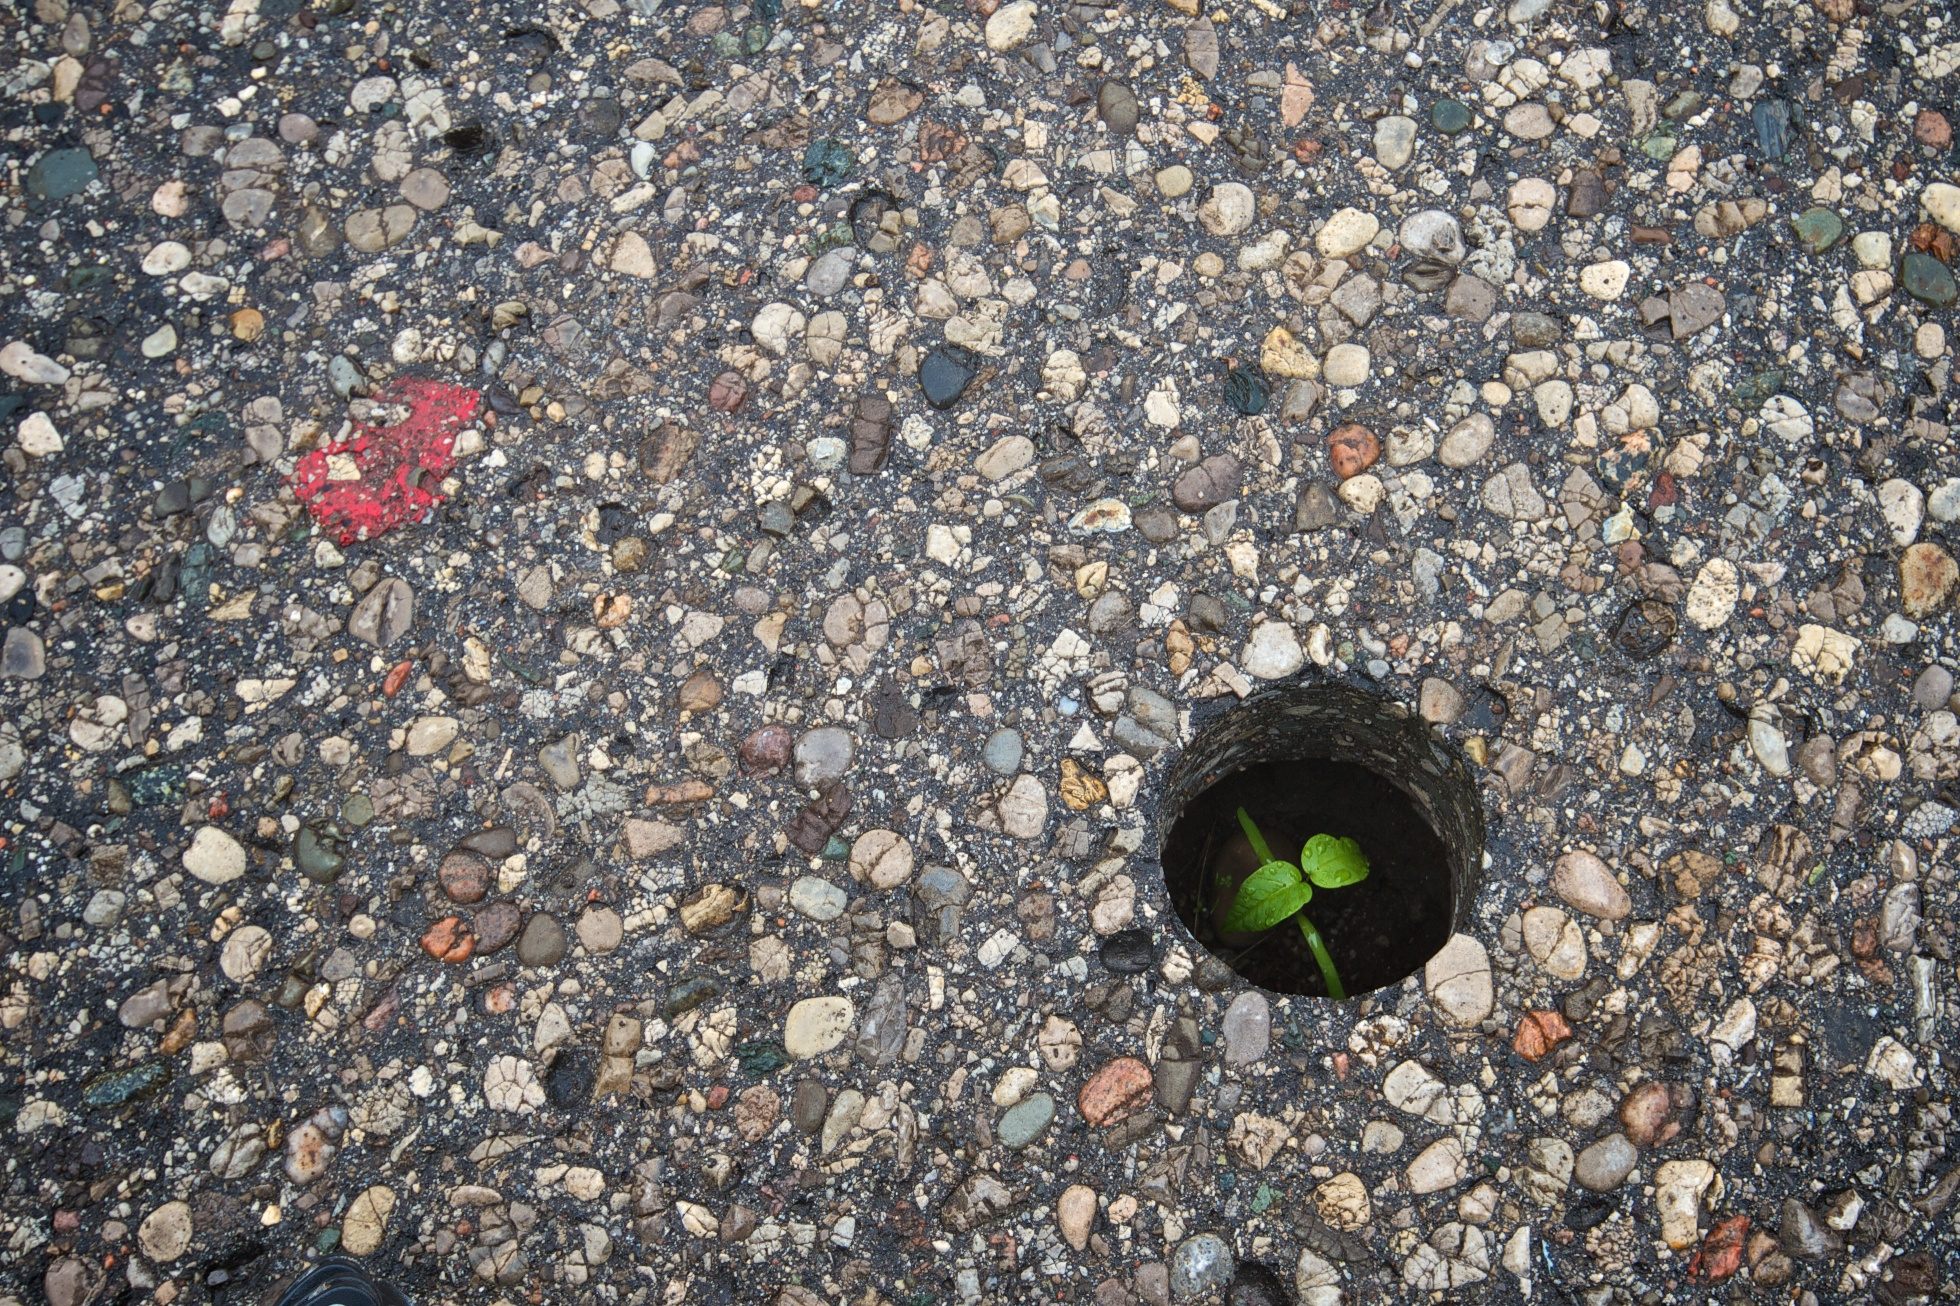 A photo of a tiny green plant, growing in a hole in the concrete.